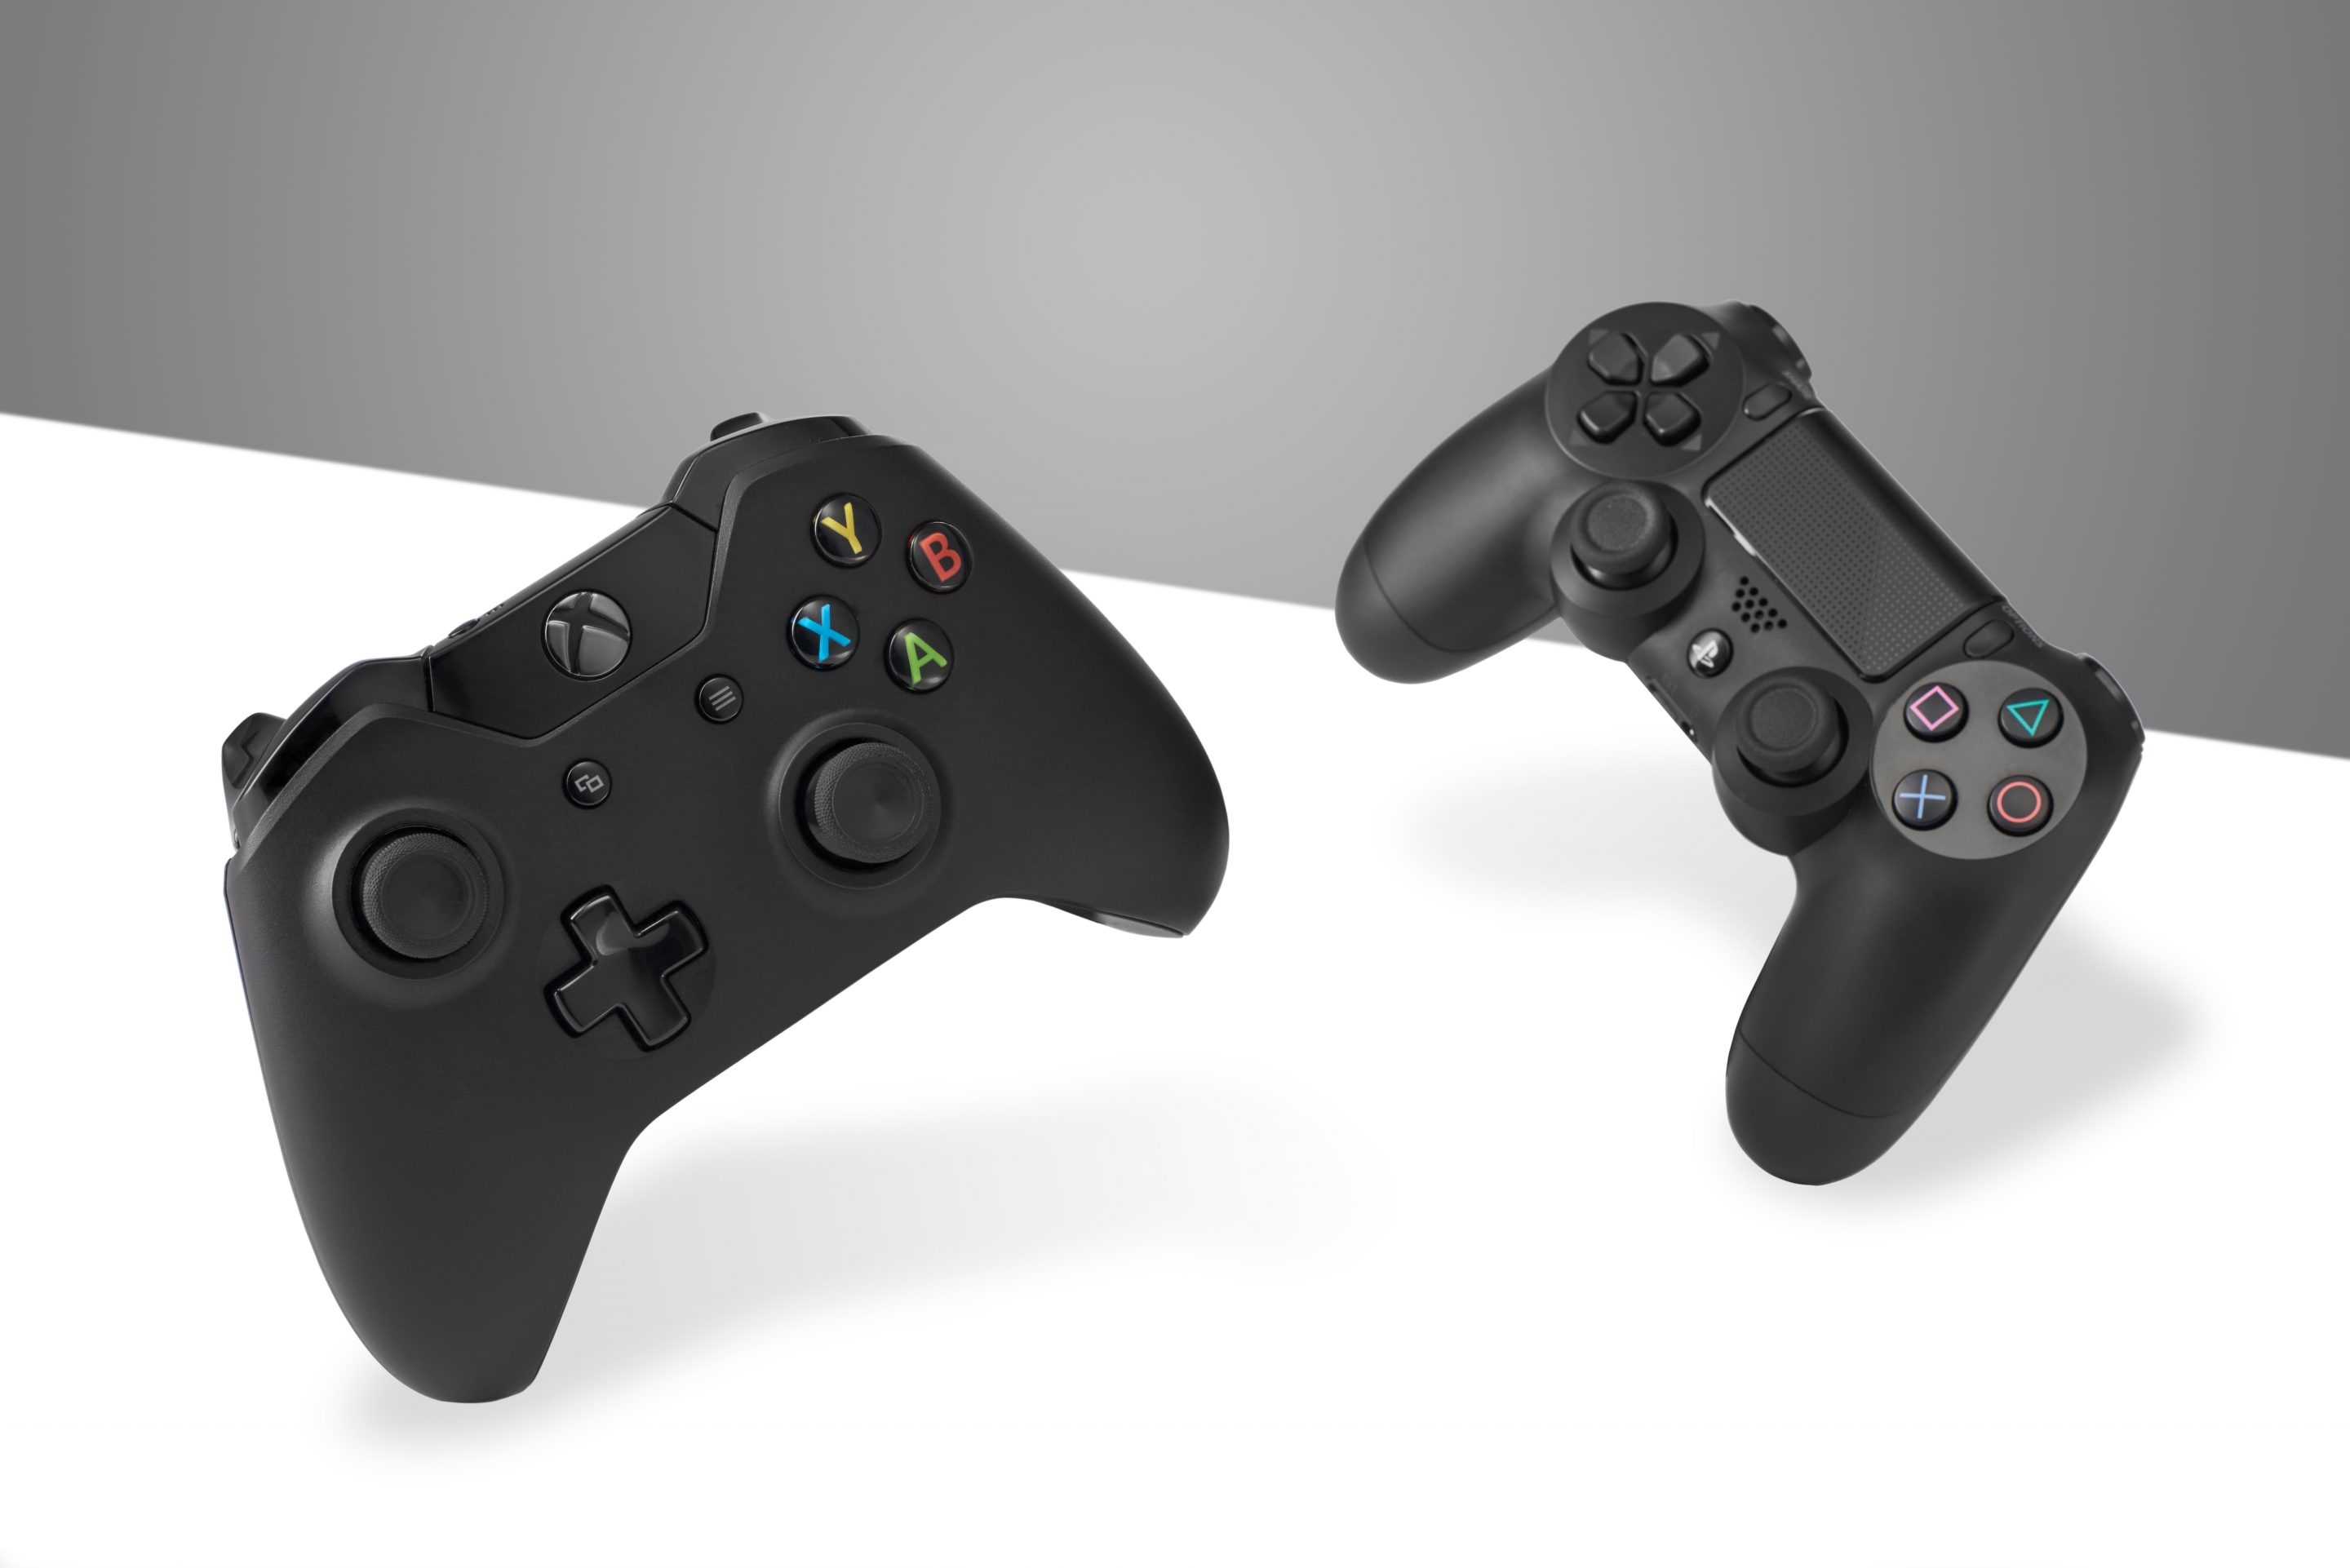 A Sony DualShock 4 wireless controller (R) and Microsoft Xbox One wireless controller, taken on January 22, 2016. (Photo by Olly Curtis/Future Publishing via Getty Images)